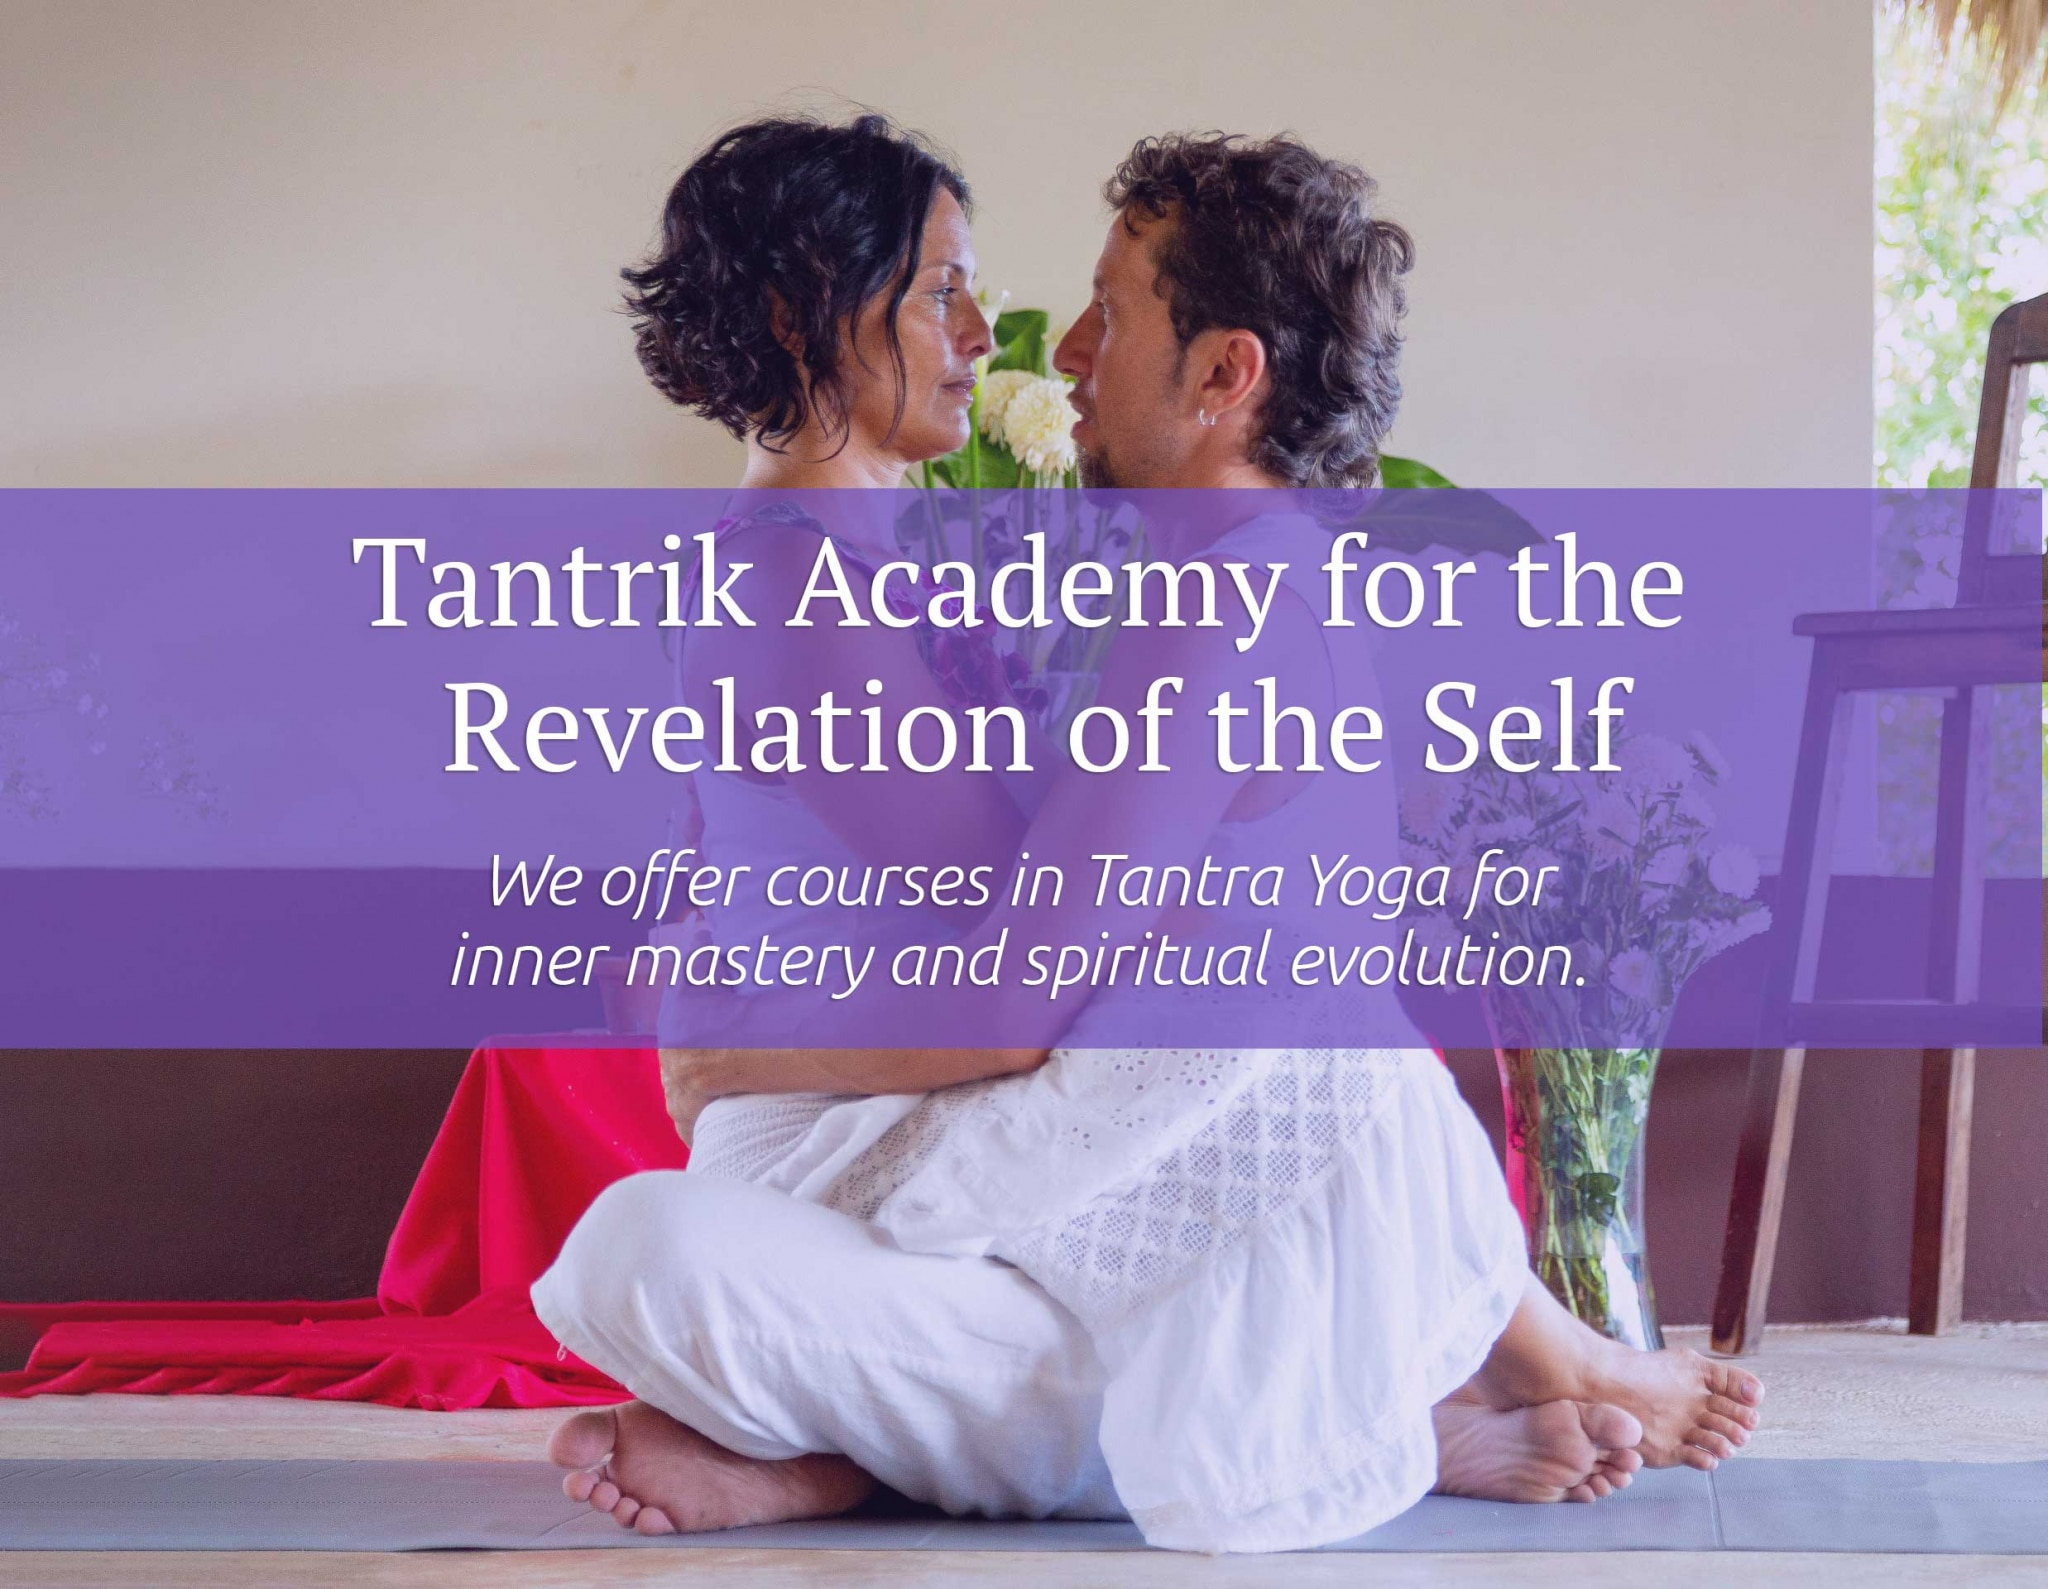 Tantrik Academy for the Revevlation of the Self